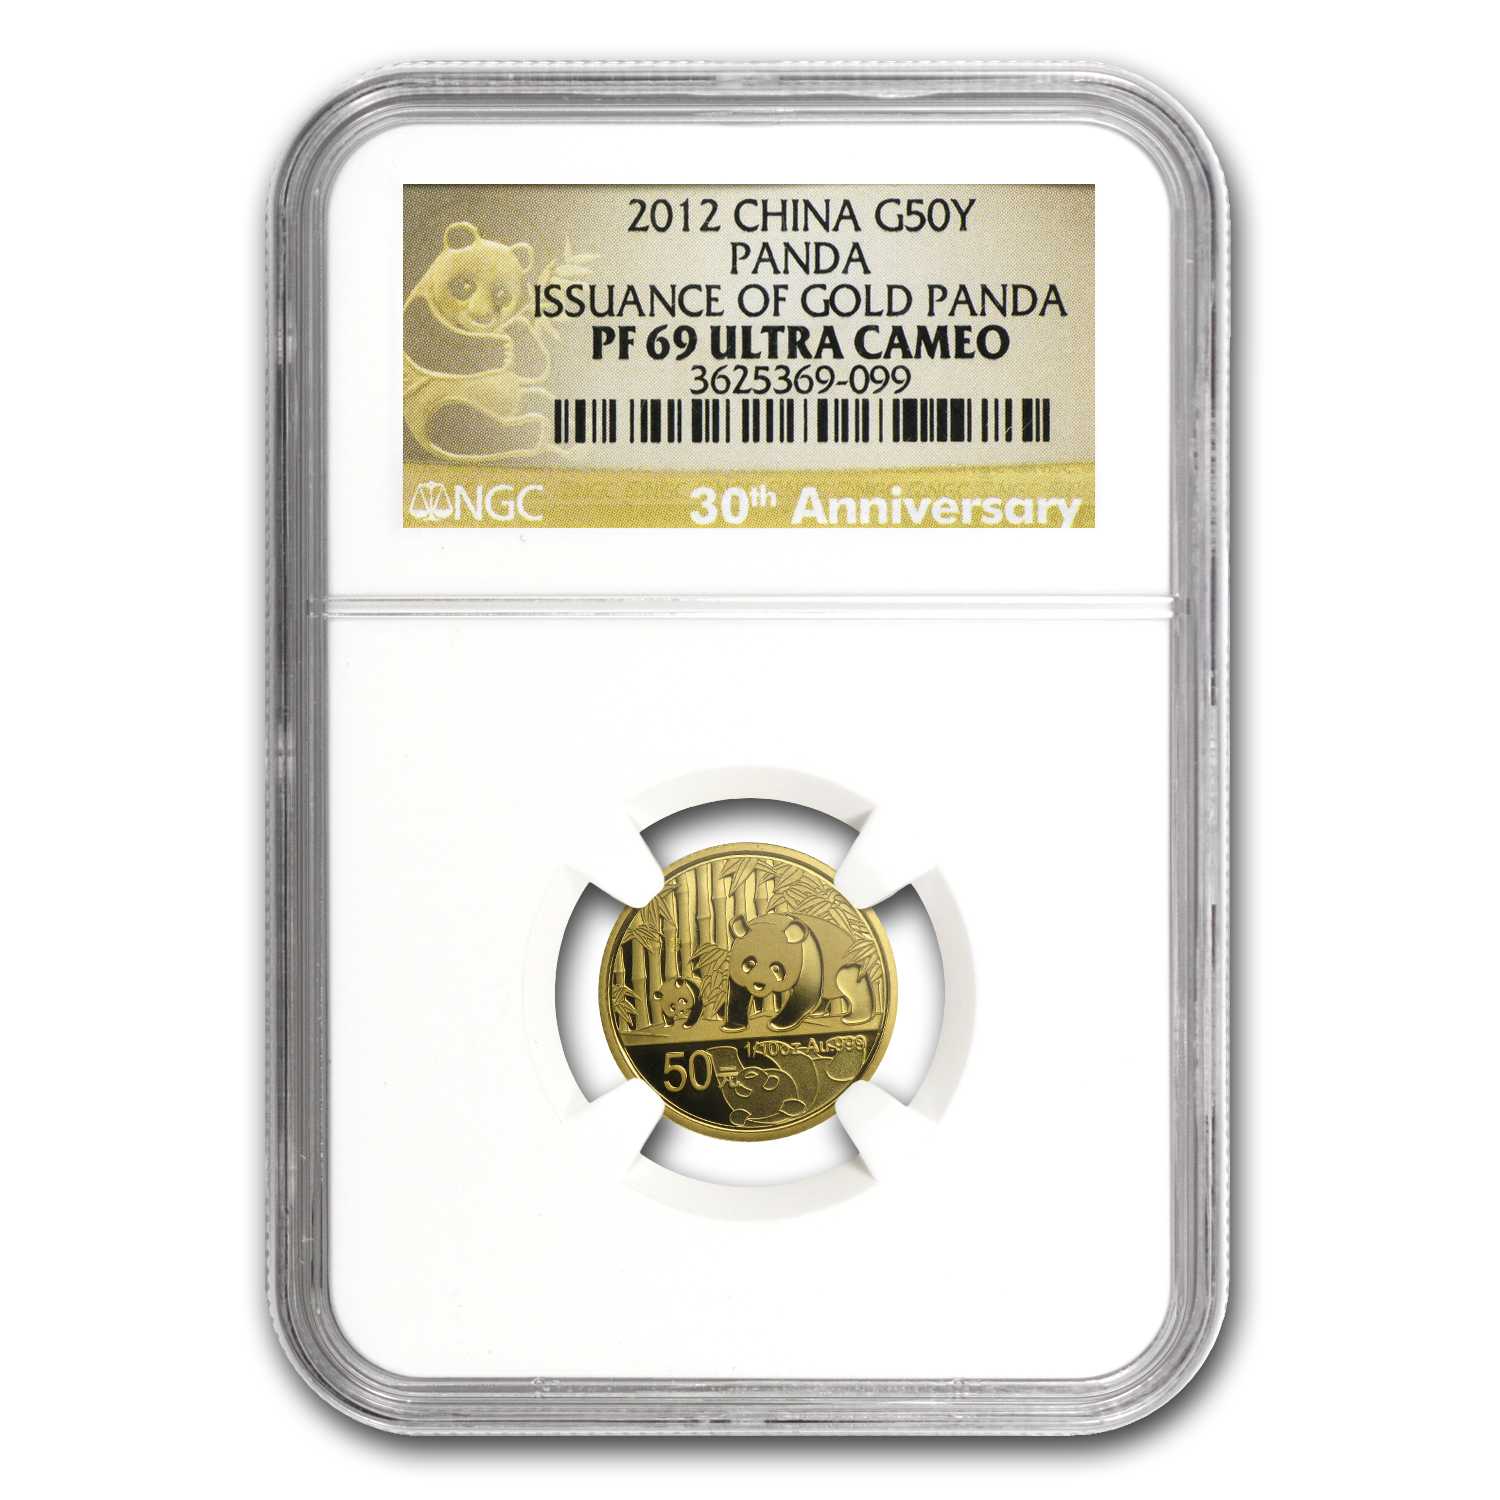 2012 China 1/10 oz Proof Gold Panda PF-69 NGC (30th Anniv)